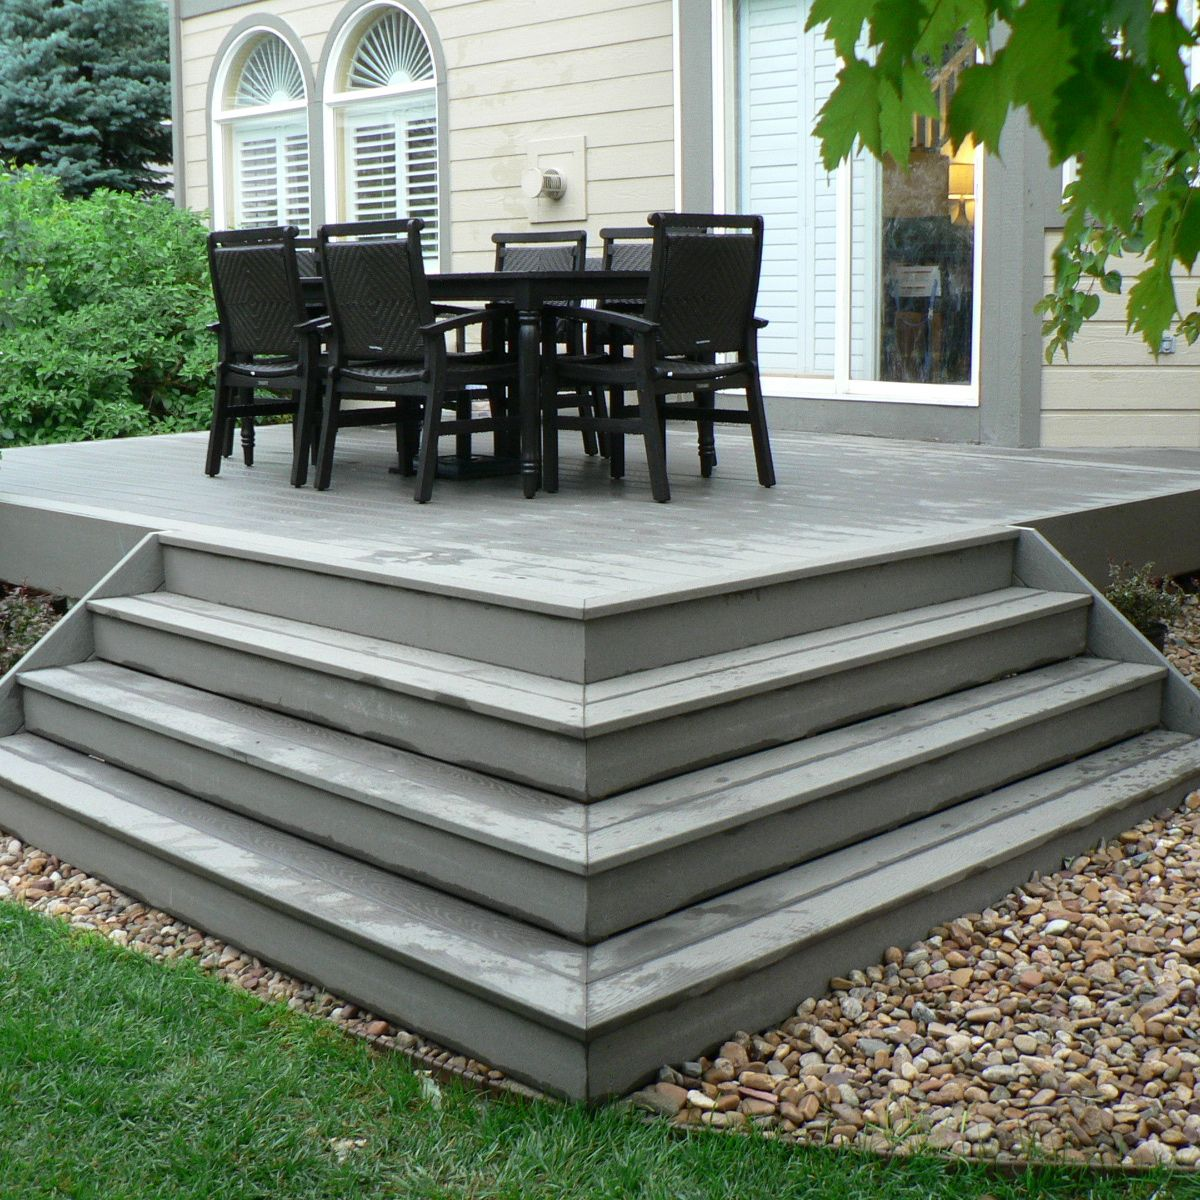 Pictures Of Composite Decks And Steps